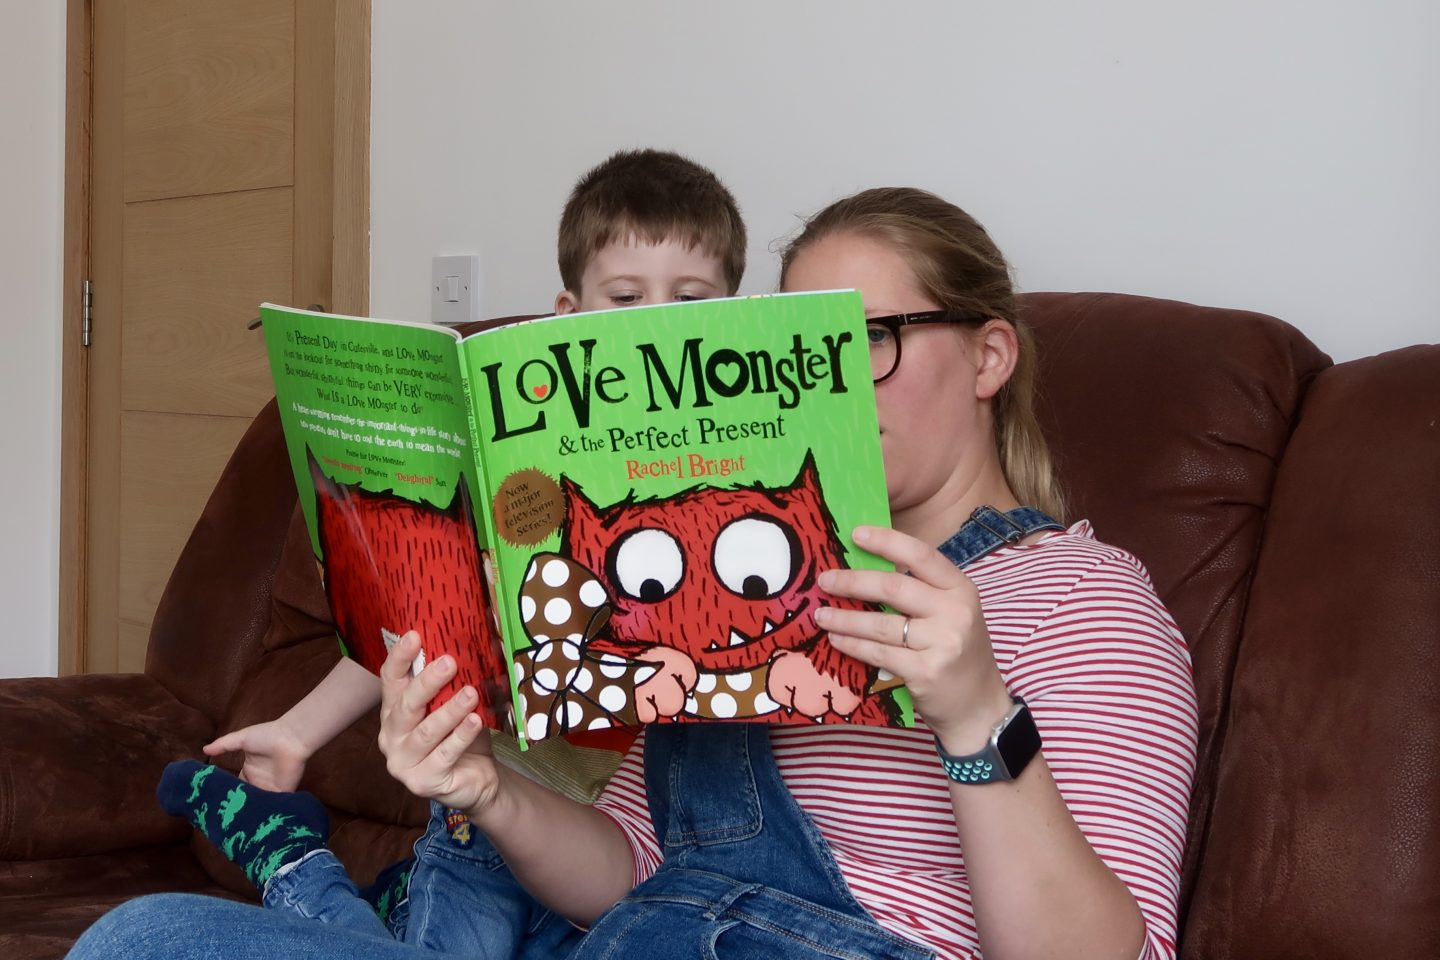 A woman reading a book to a boy. The book is green and has Love Monster written on it, and there is a picture of a red monster